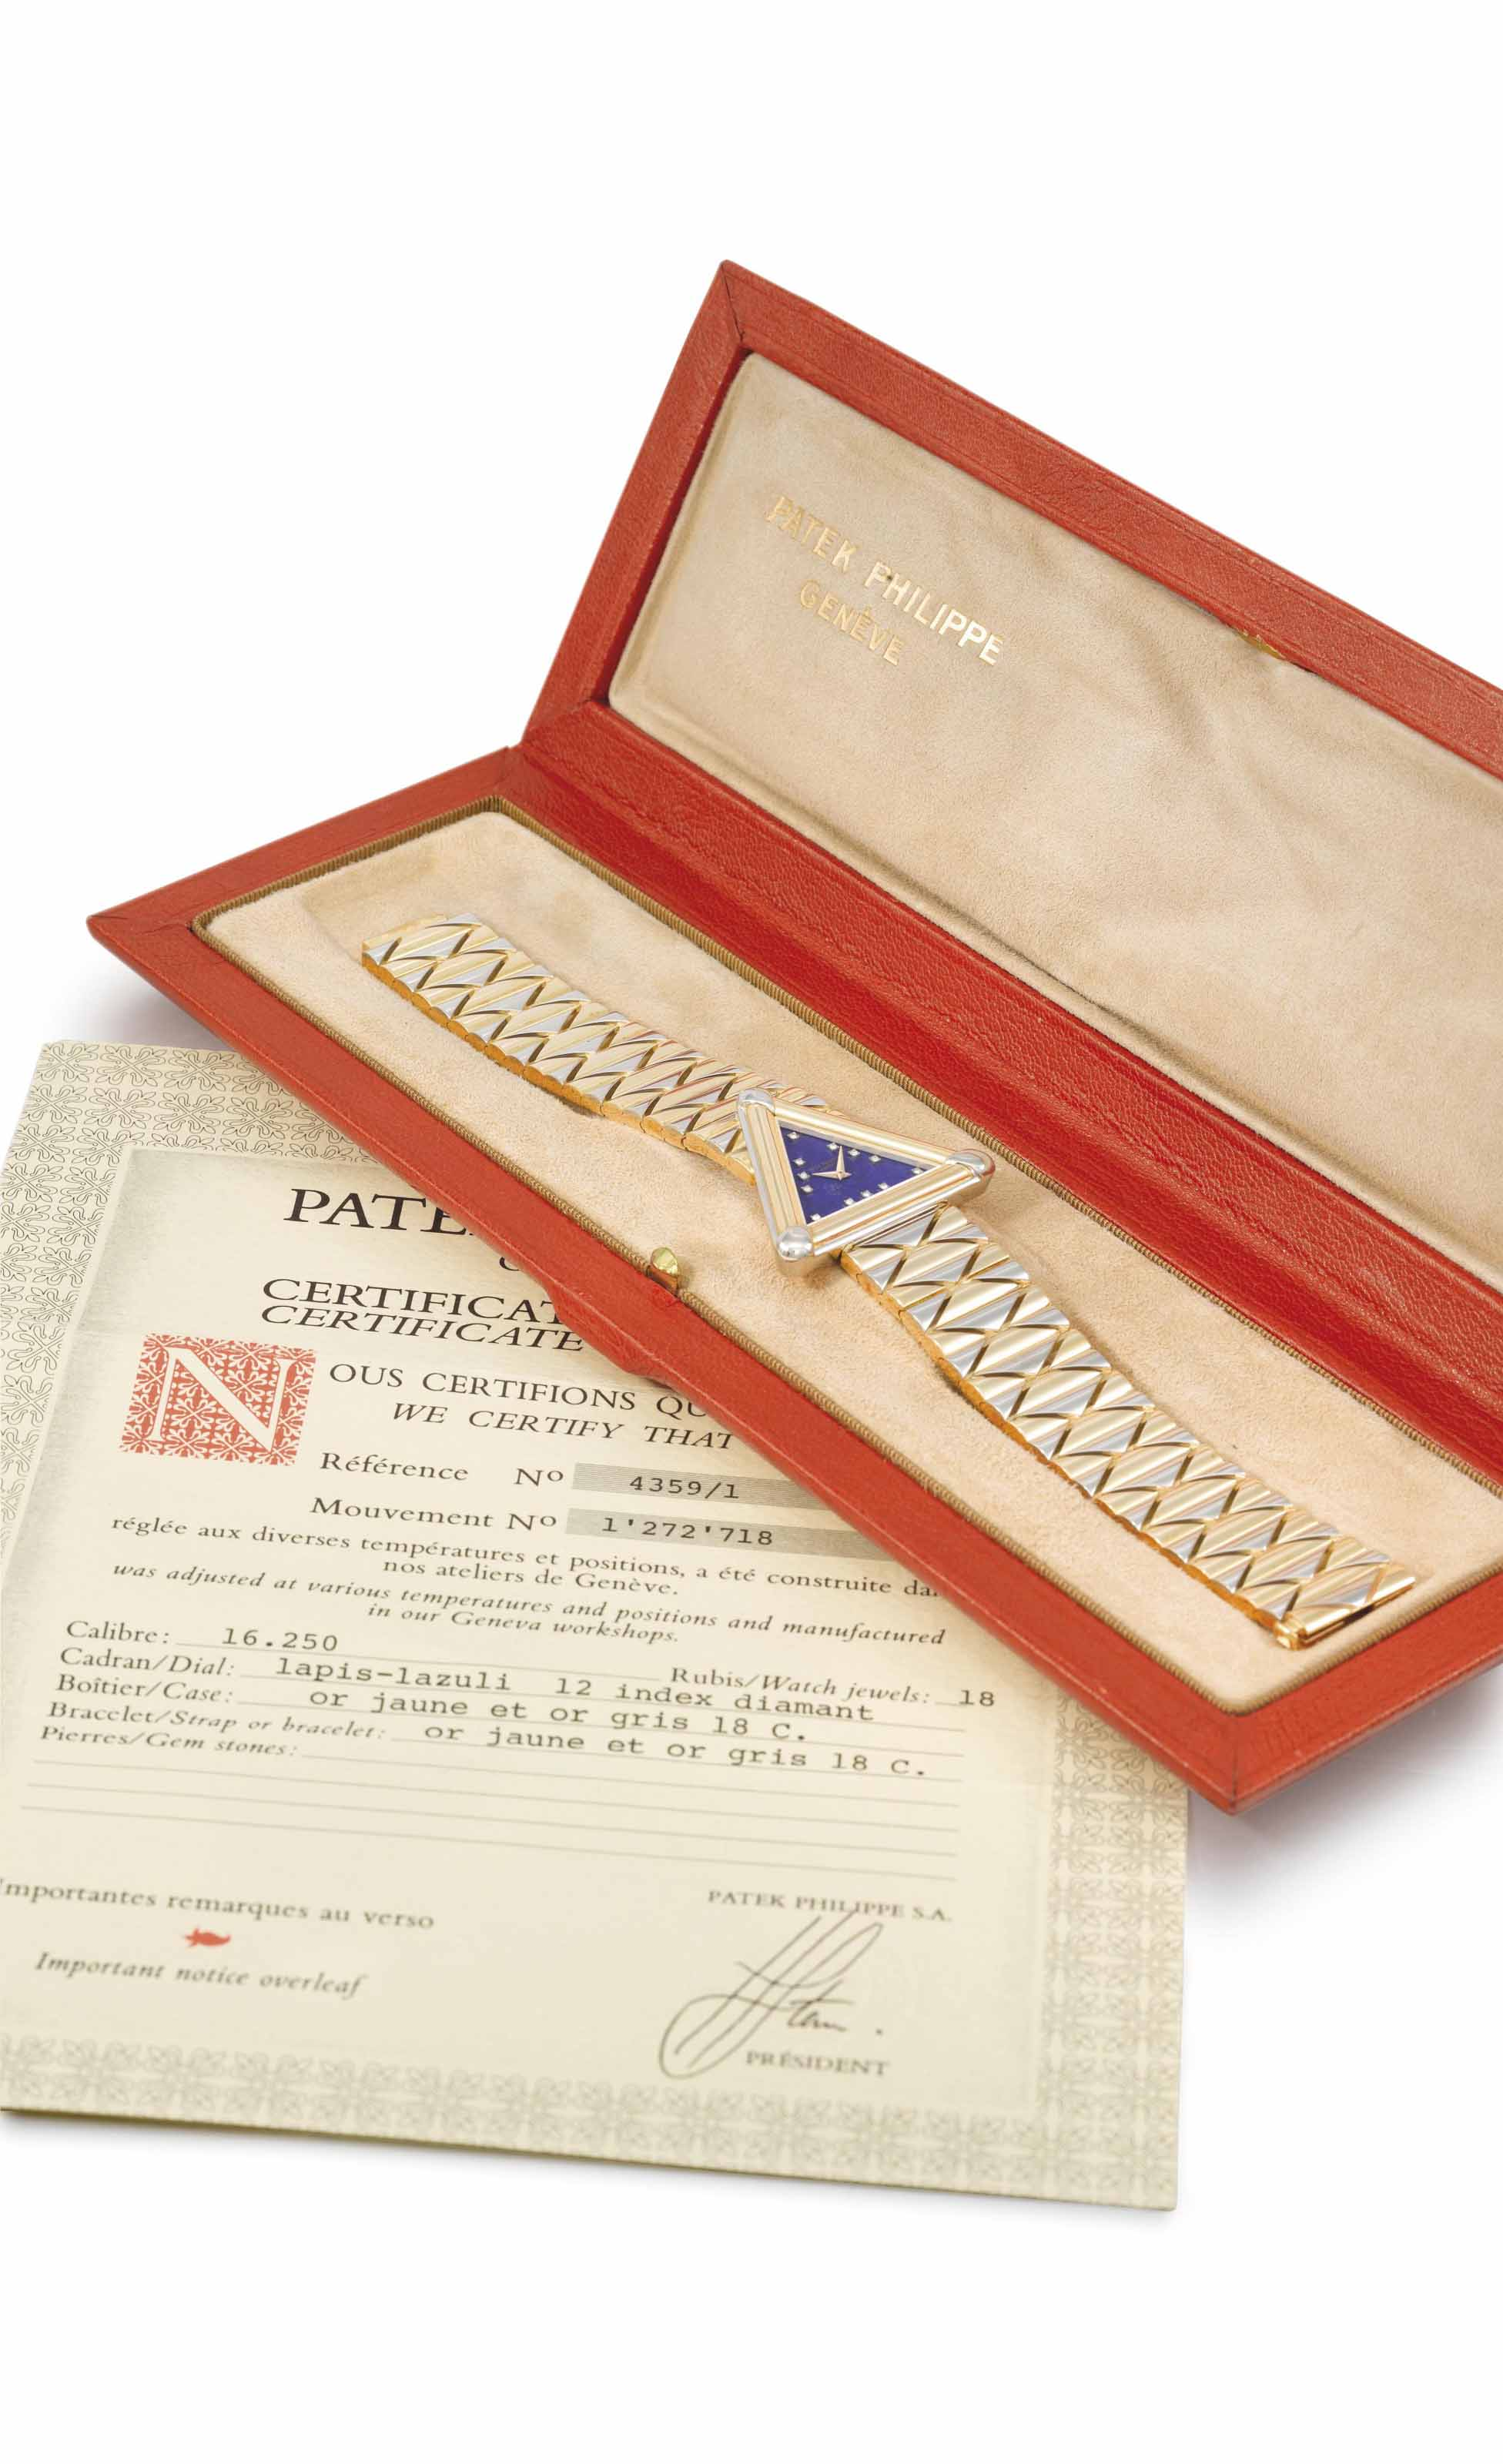 Patek Philippe. A very fine, unusual and possibly unique 18K white and yellow gold triangular bracelet watch with diamond-set lapis lazuli dial